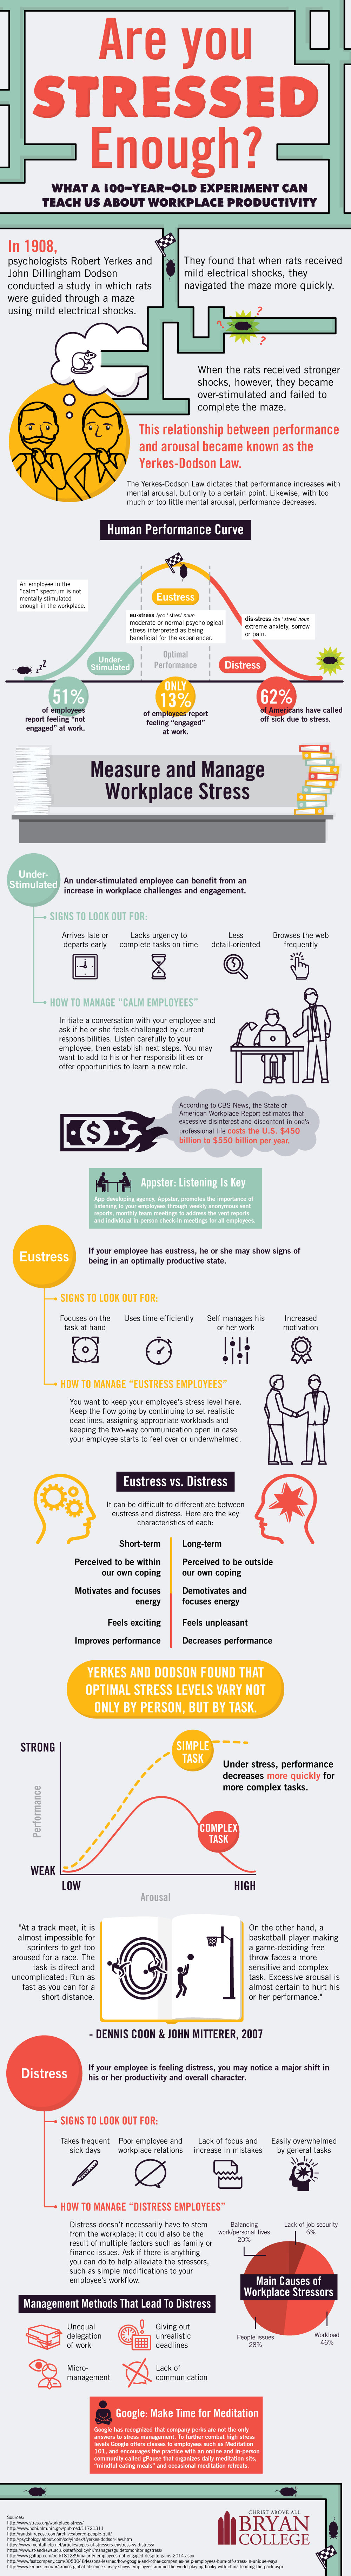 Infographic on the positive form of stress known as eustress.